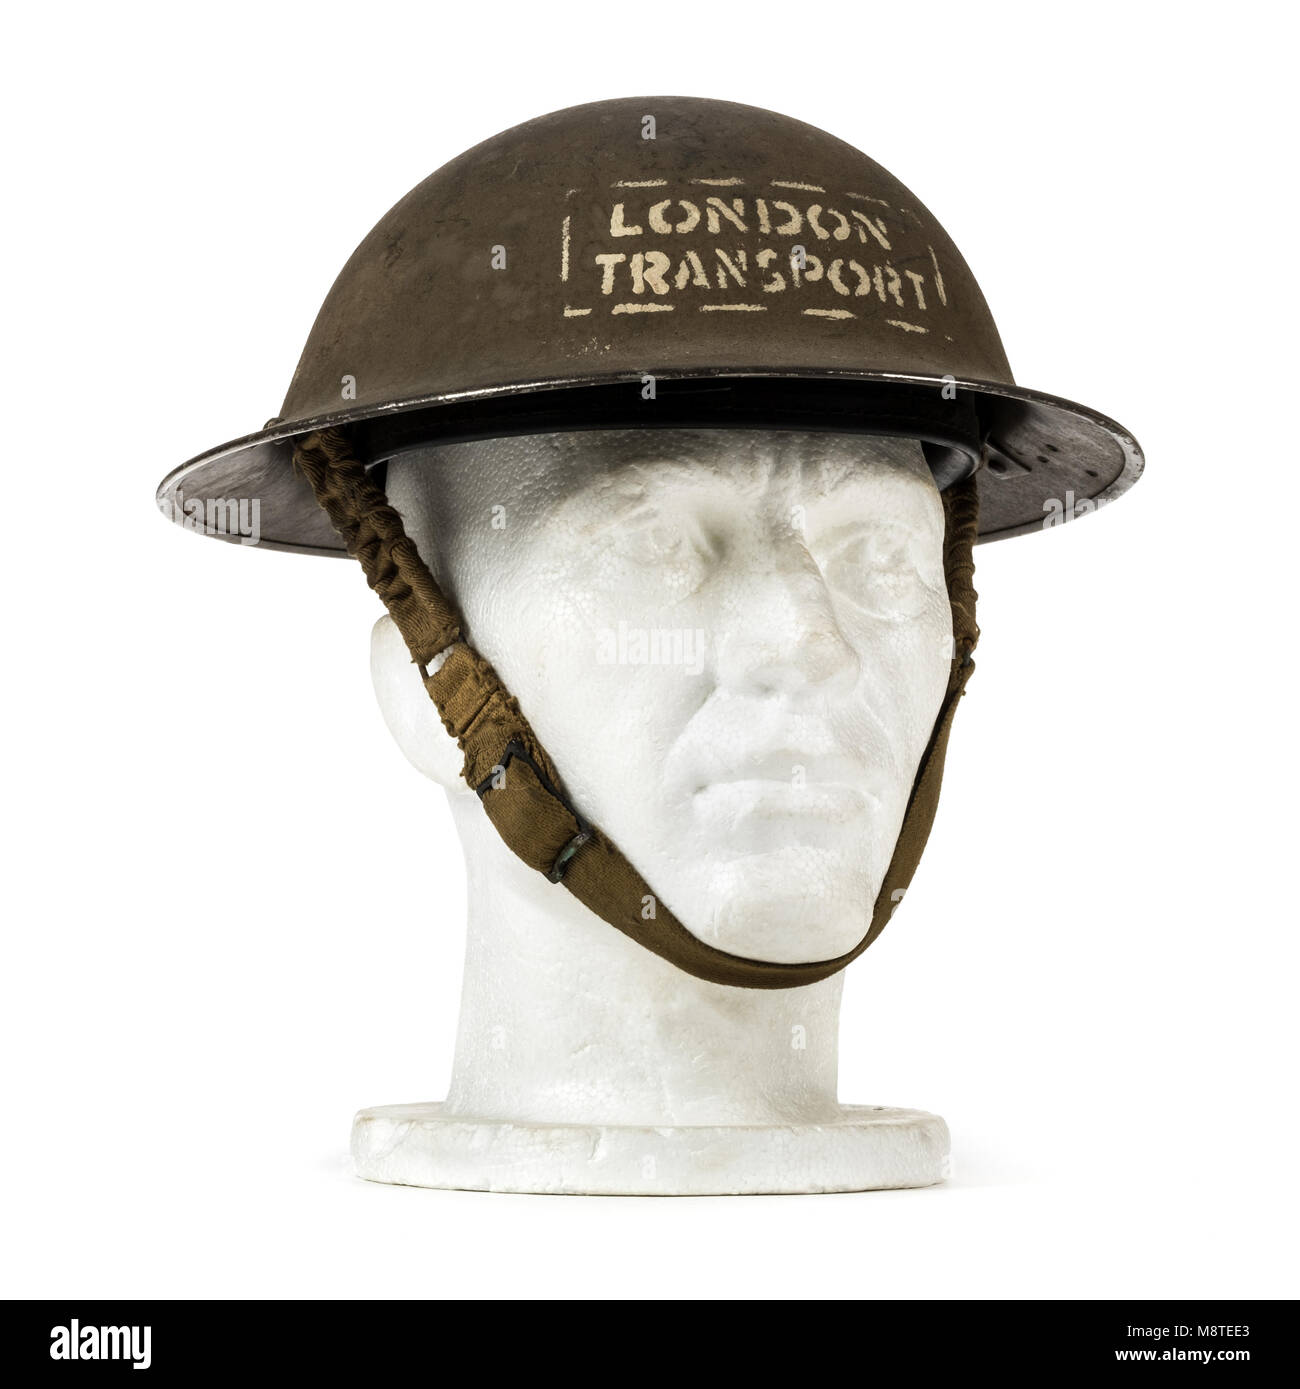 WW2 London Transport helmet used on London buses during the Blitz and also by underground shelter staff - Stock Image